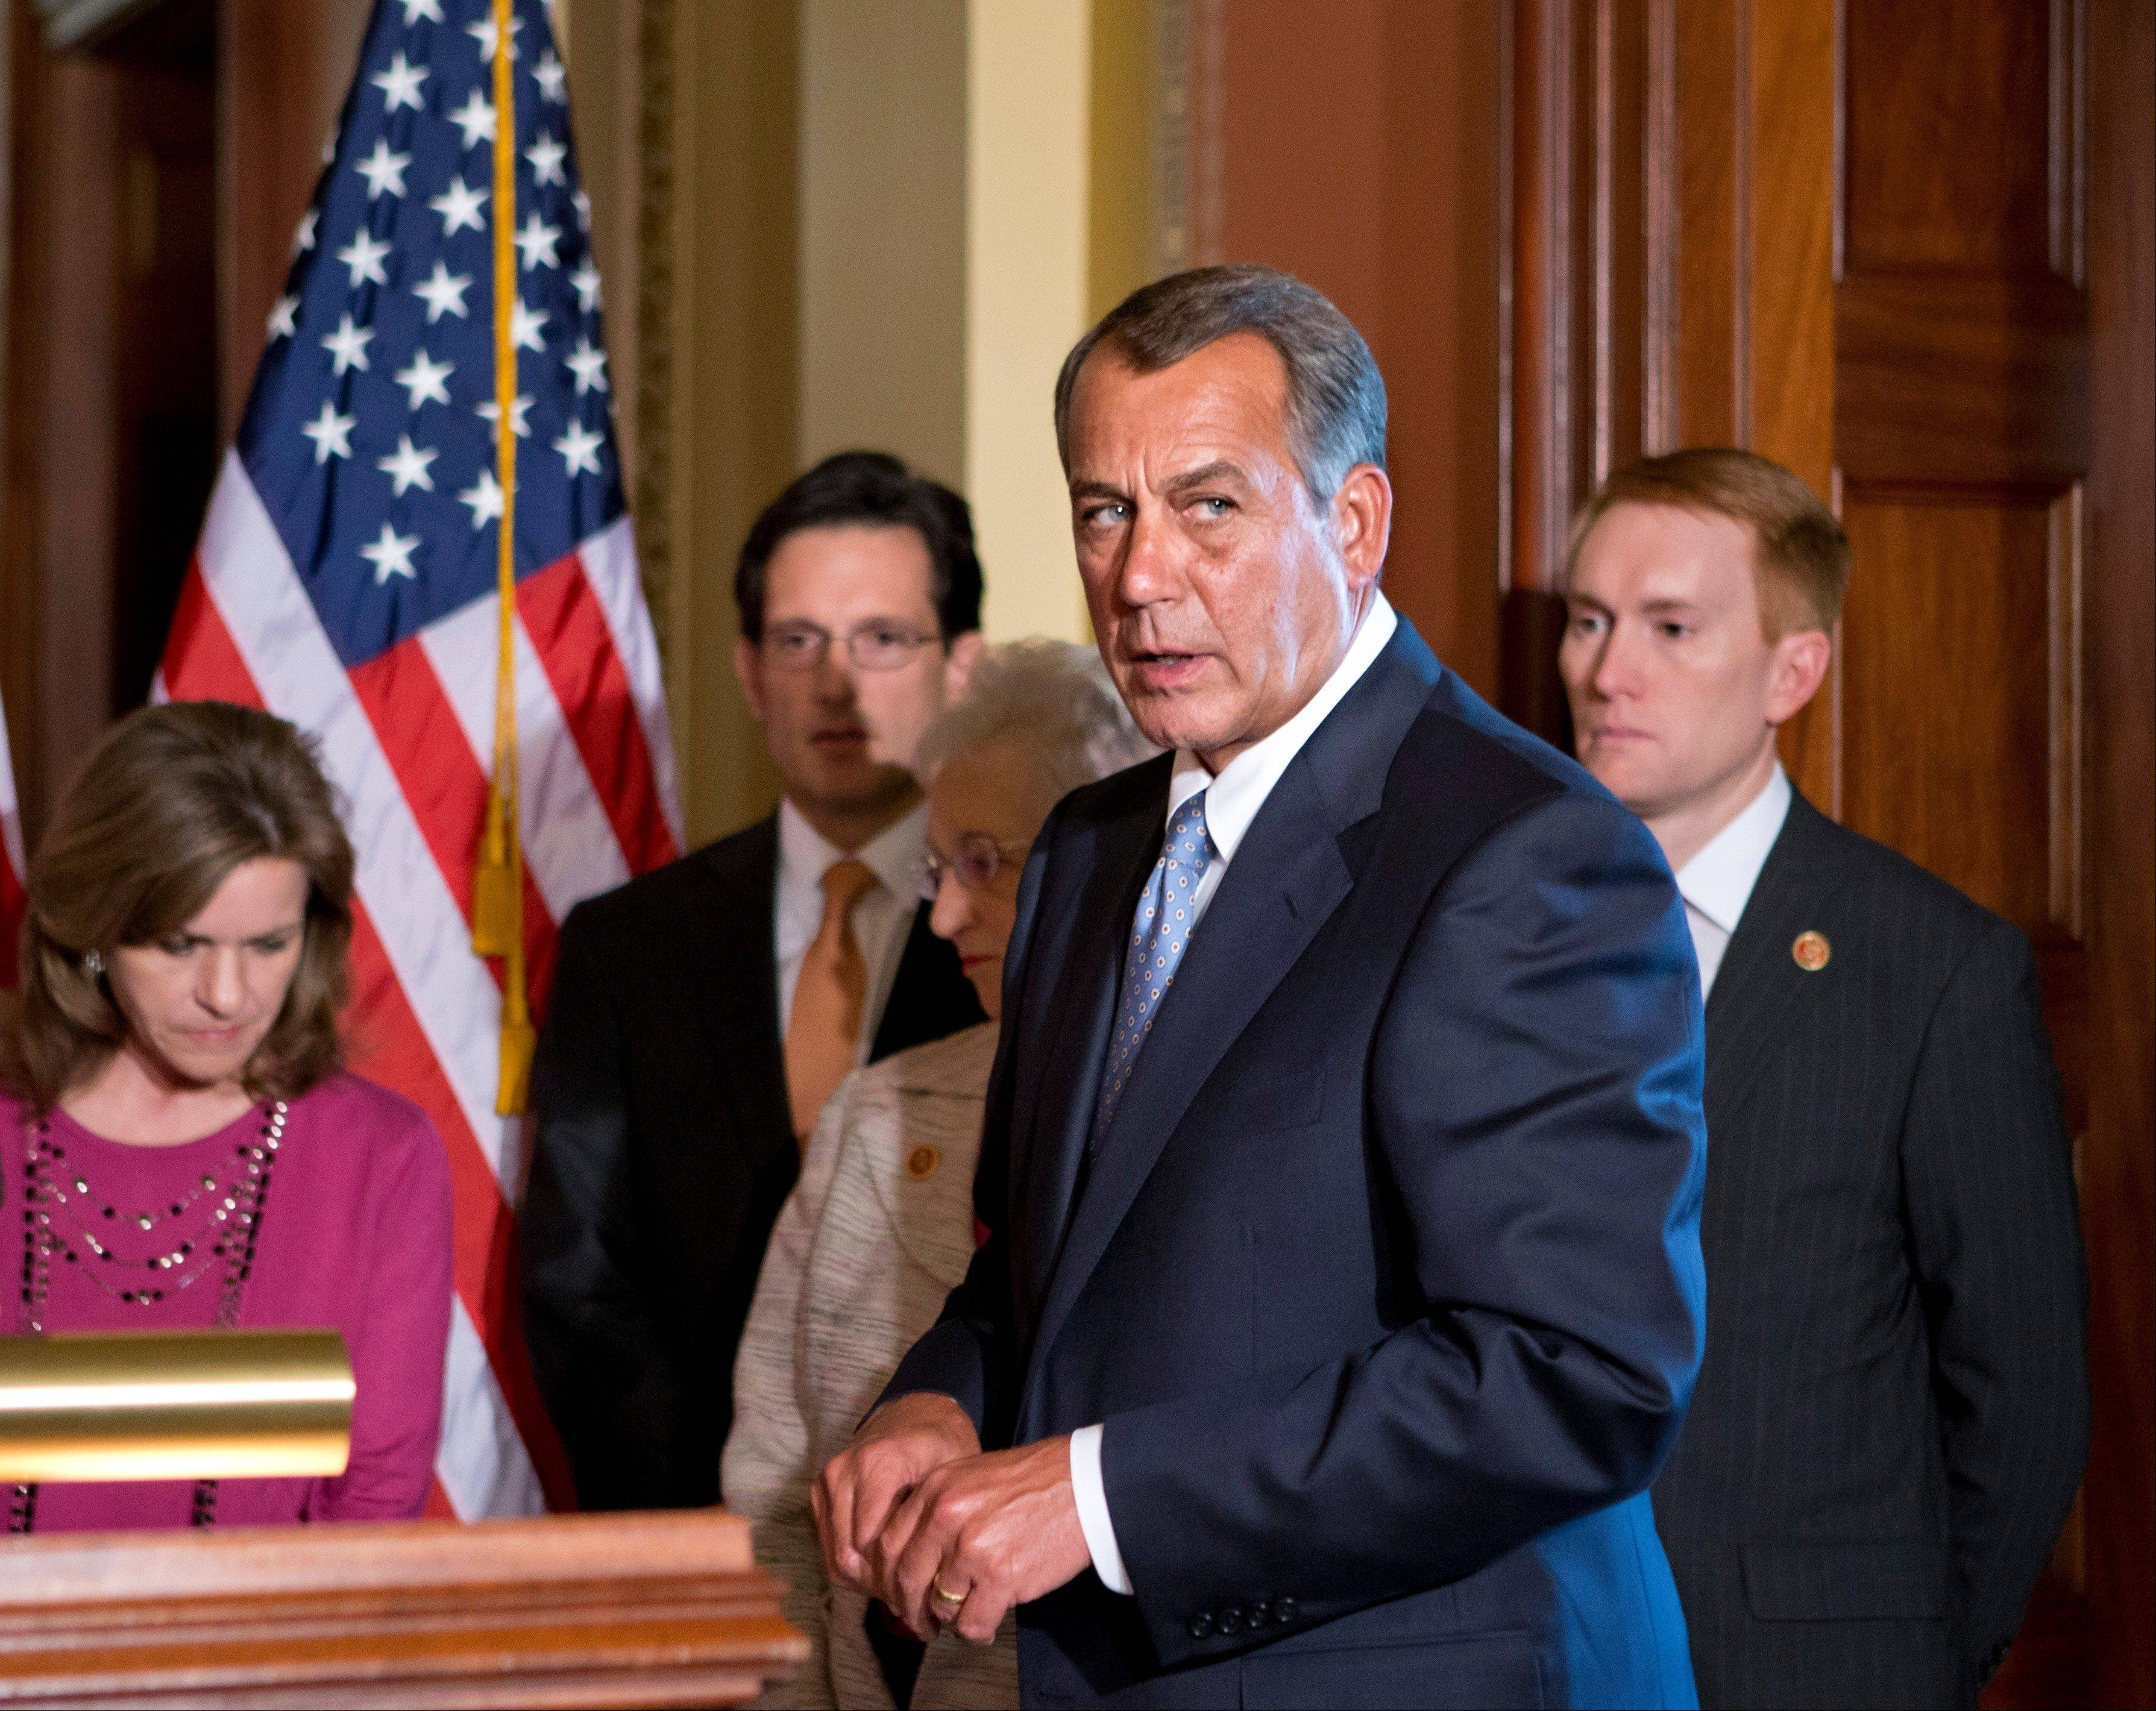 House Speaker John Boehner of Ohio, accompanied by fellow members of the House GOP leadership, responds to President Barack Obama's remarks to the nation's governors about how to fend off the impending automatic budget cuts.